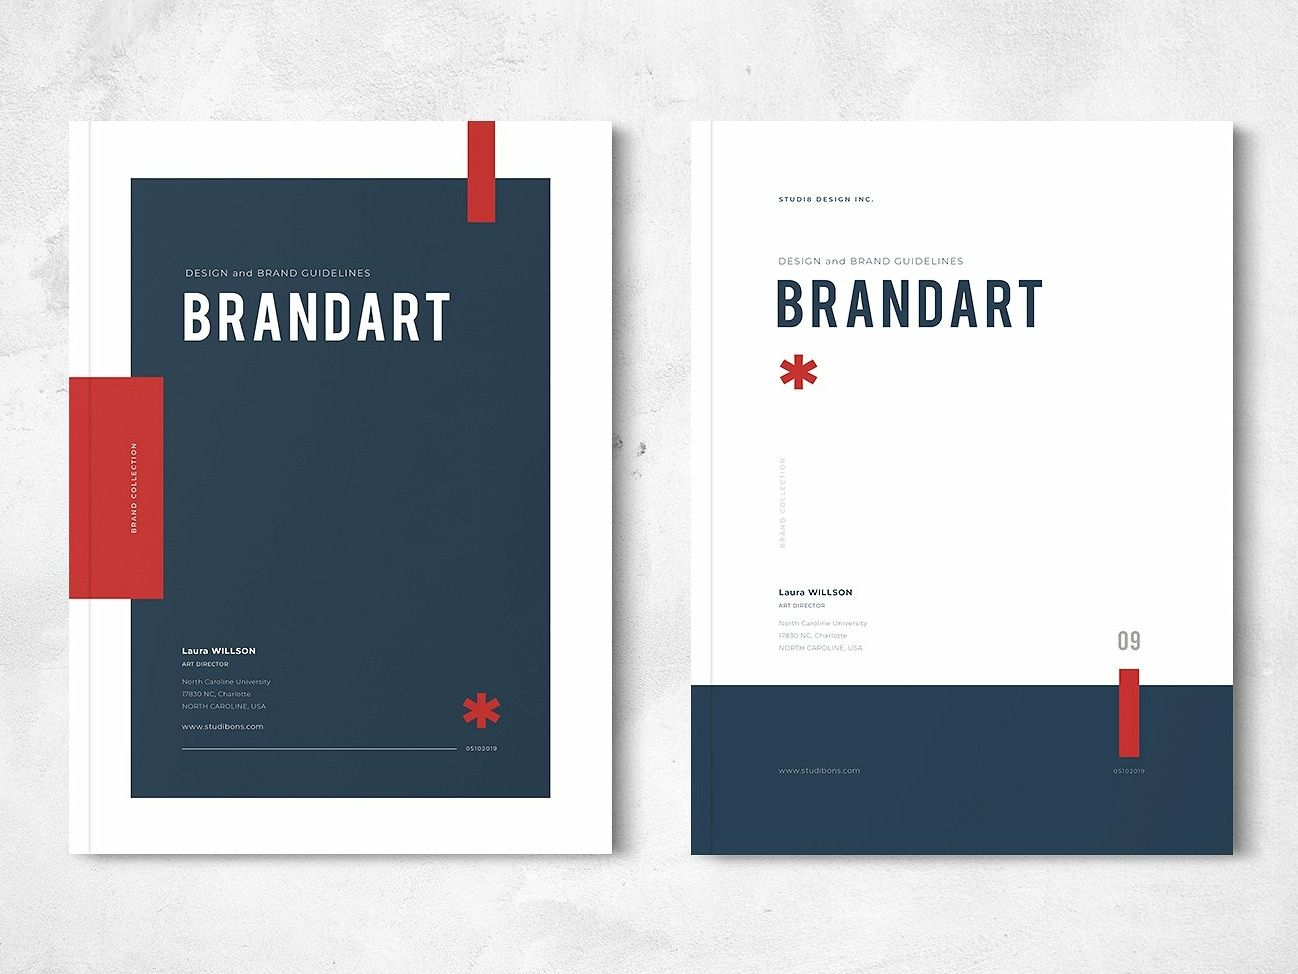 Brand Guidelines by Brochure Design